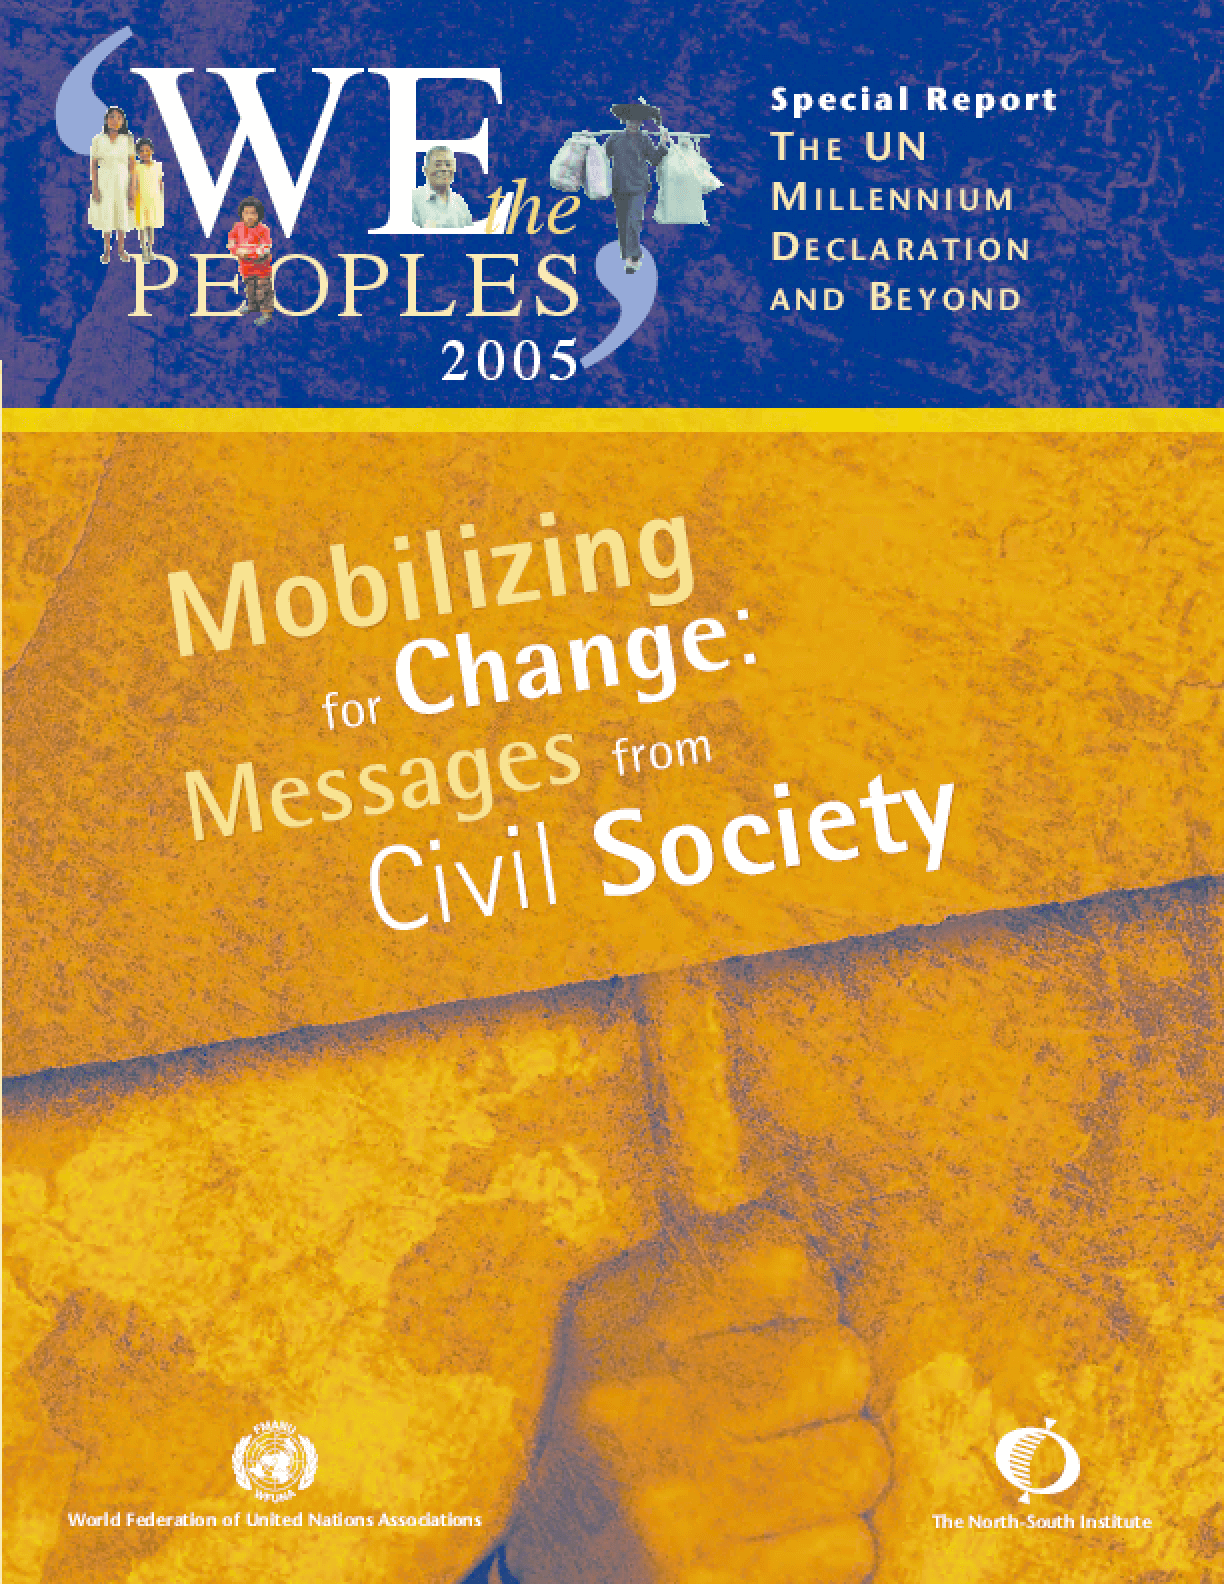 Mobilizing for Change: Messages from Civil Society